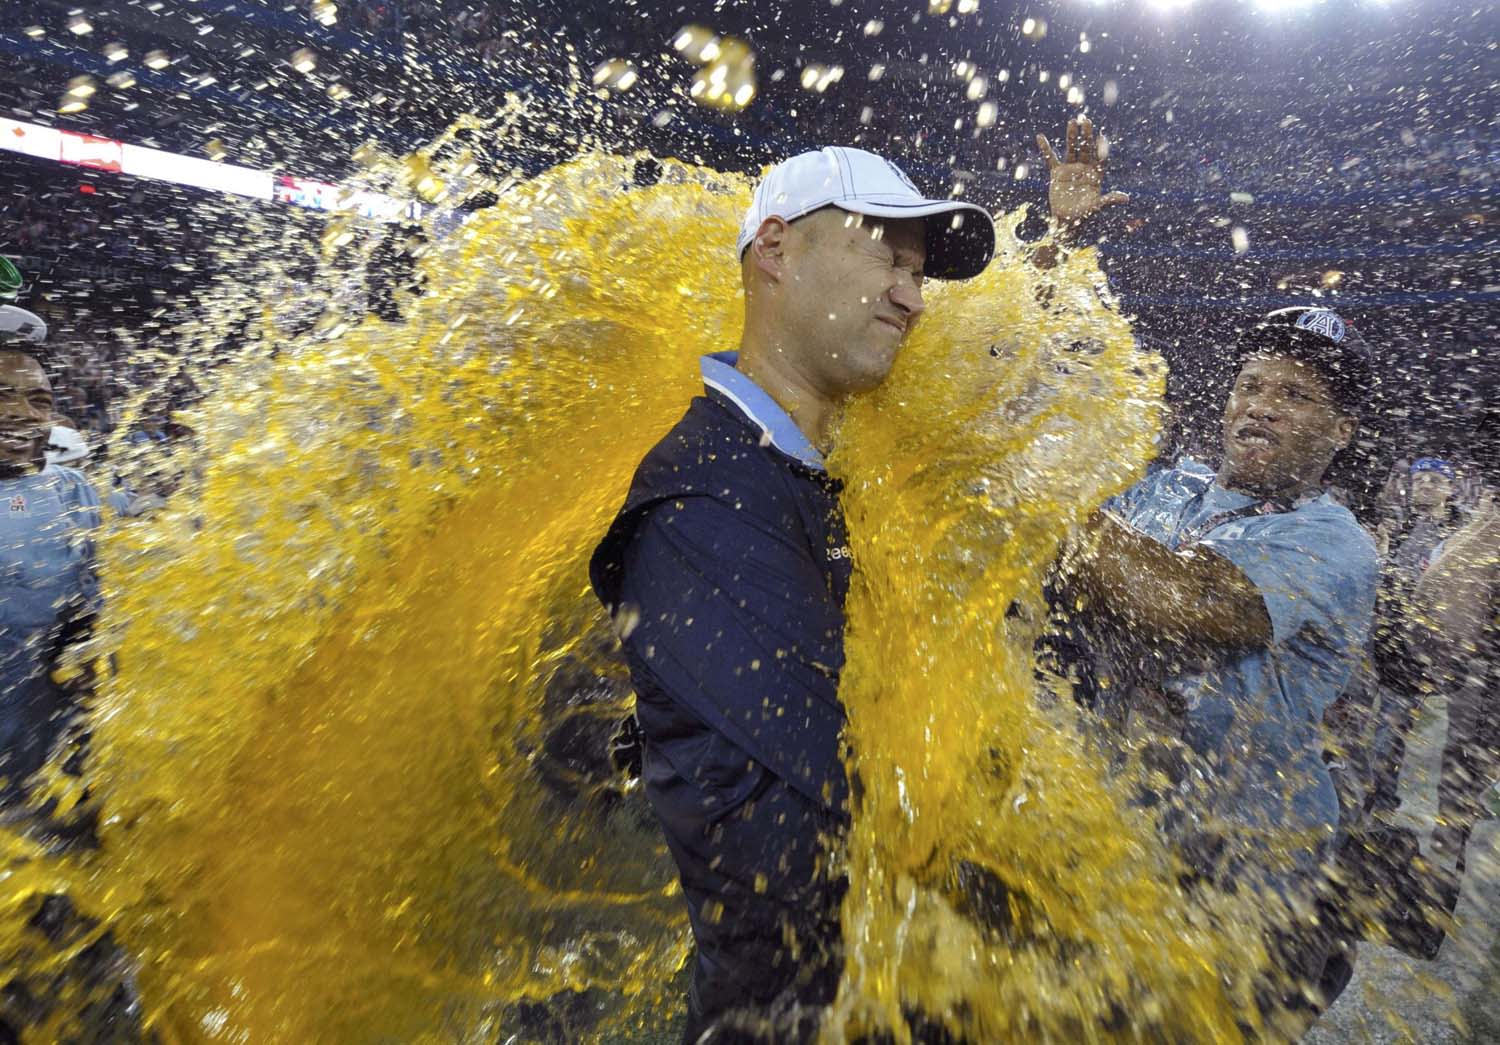 Toronto Argonauts head coach Scott Milanovich is doused by his players after the Argonauts defeated the Calgary Stampeders in the 100th CFL Grey Cup championship football game in Toronto, November 25, 2012. REUTERS/Mike Cassese